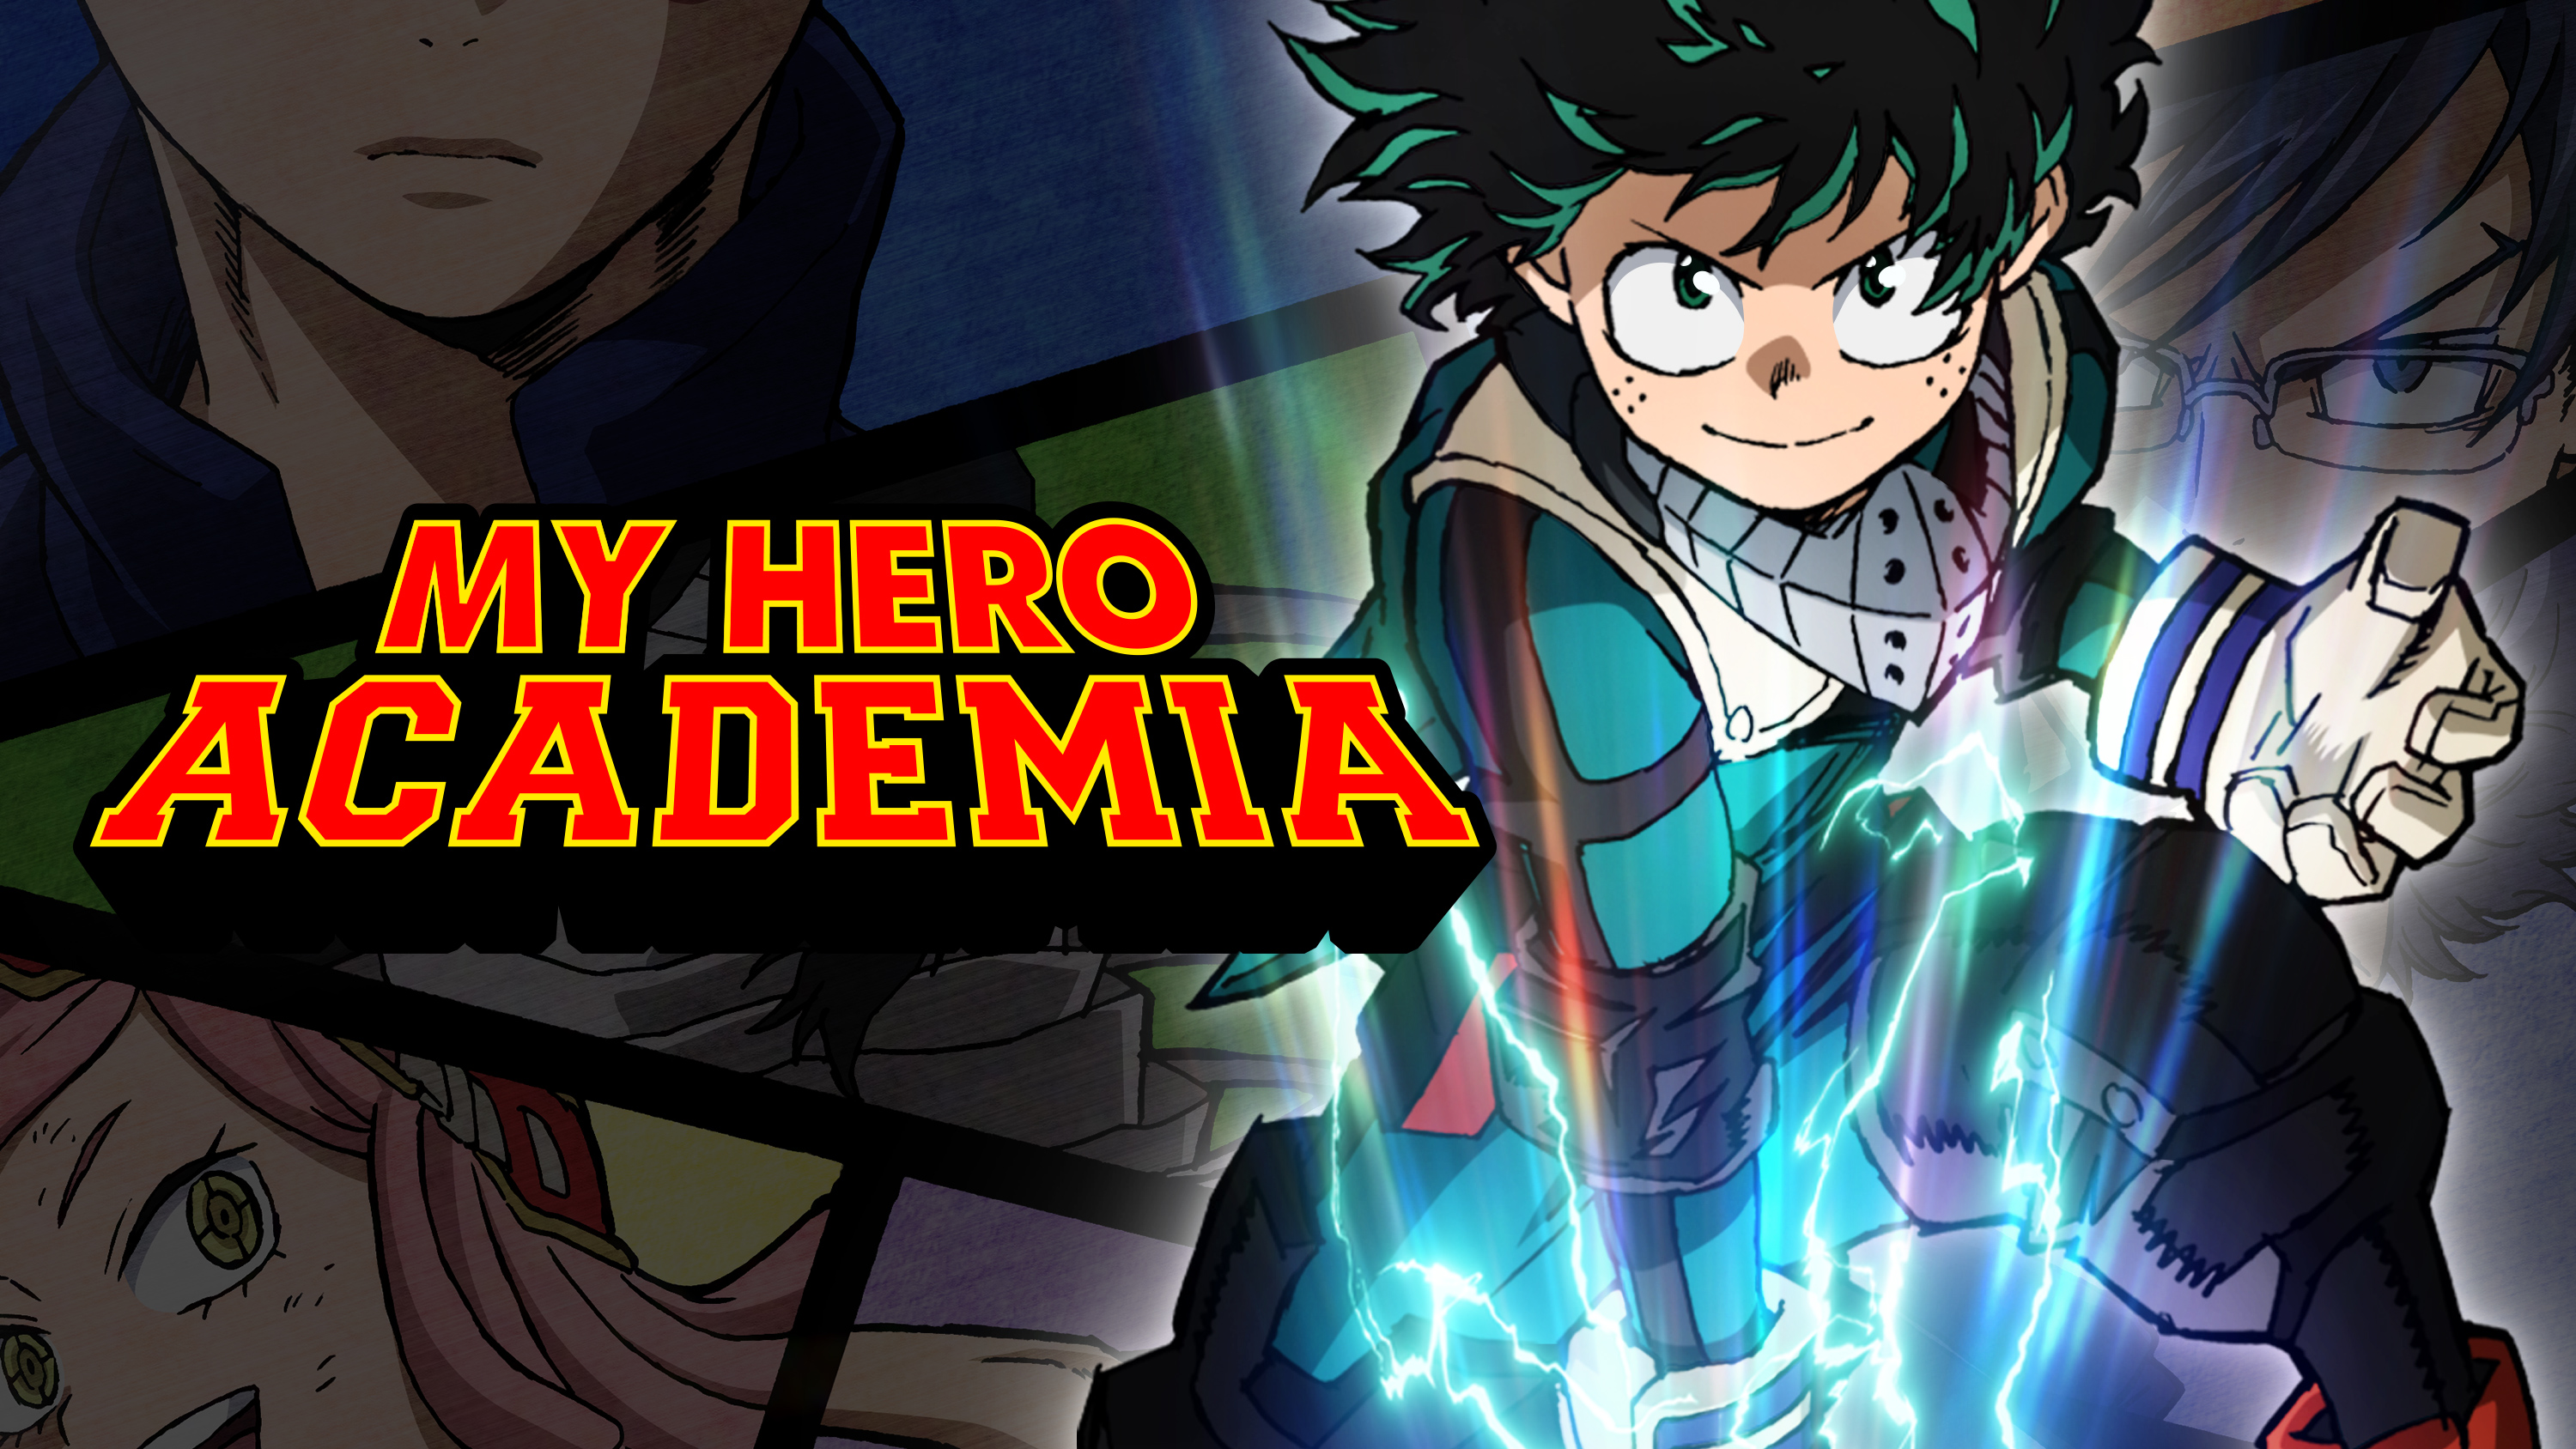 Watch my hero academia episodes sub dub action adventure shounen anime funimation